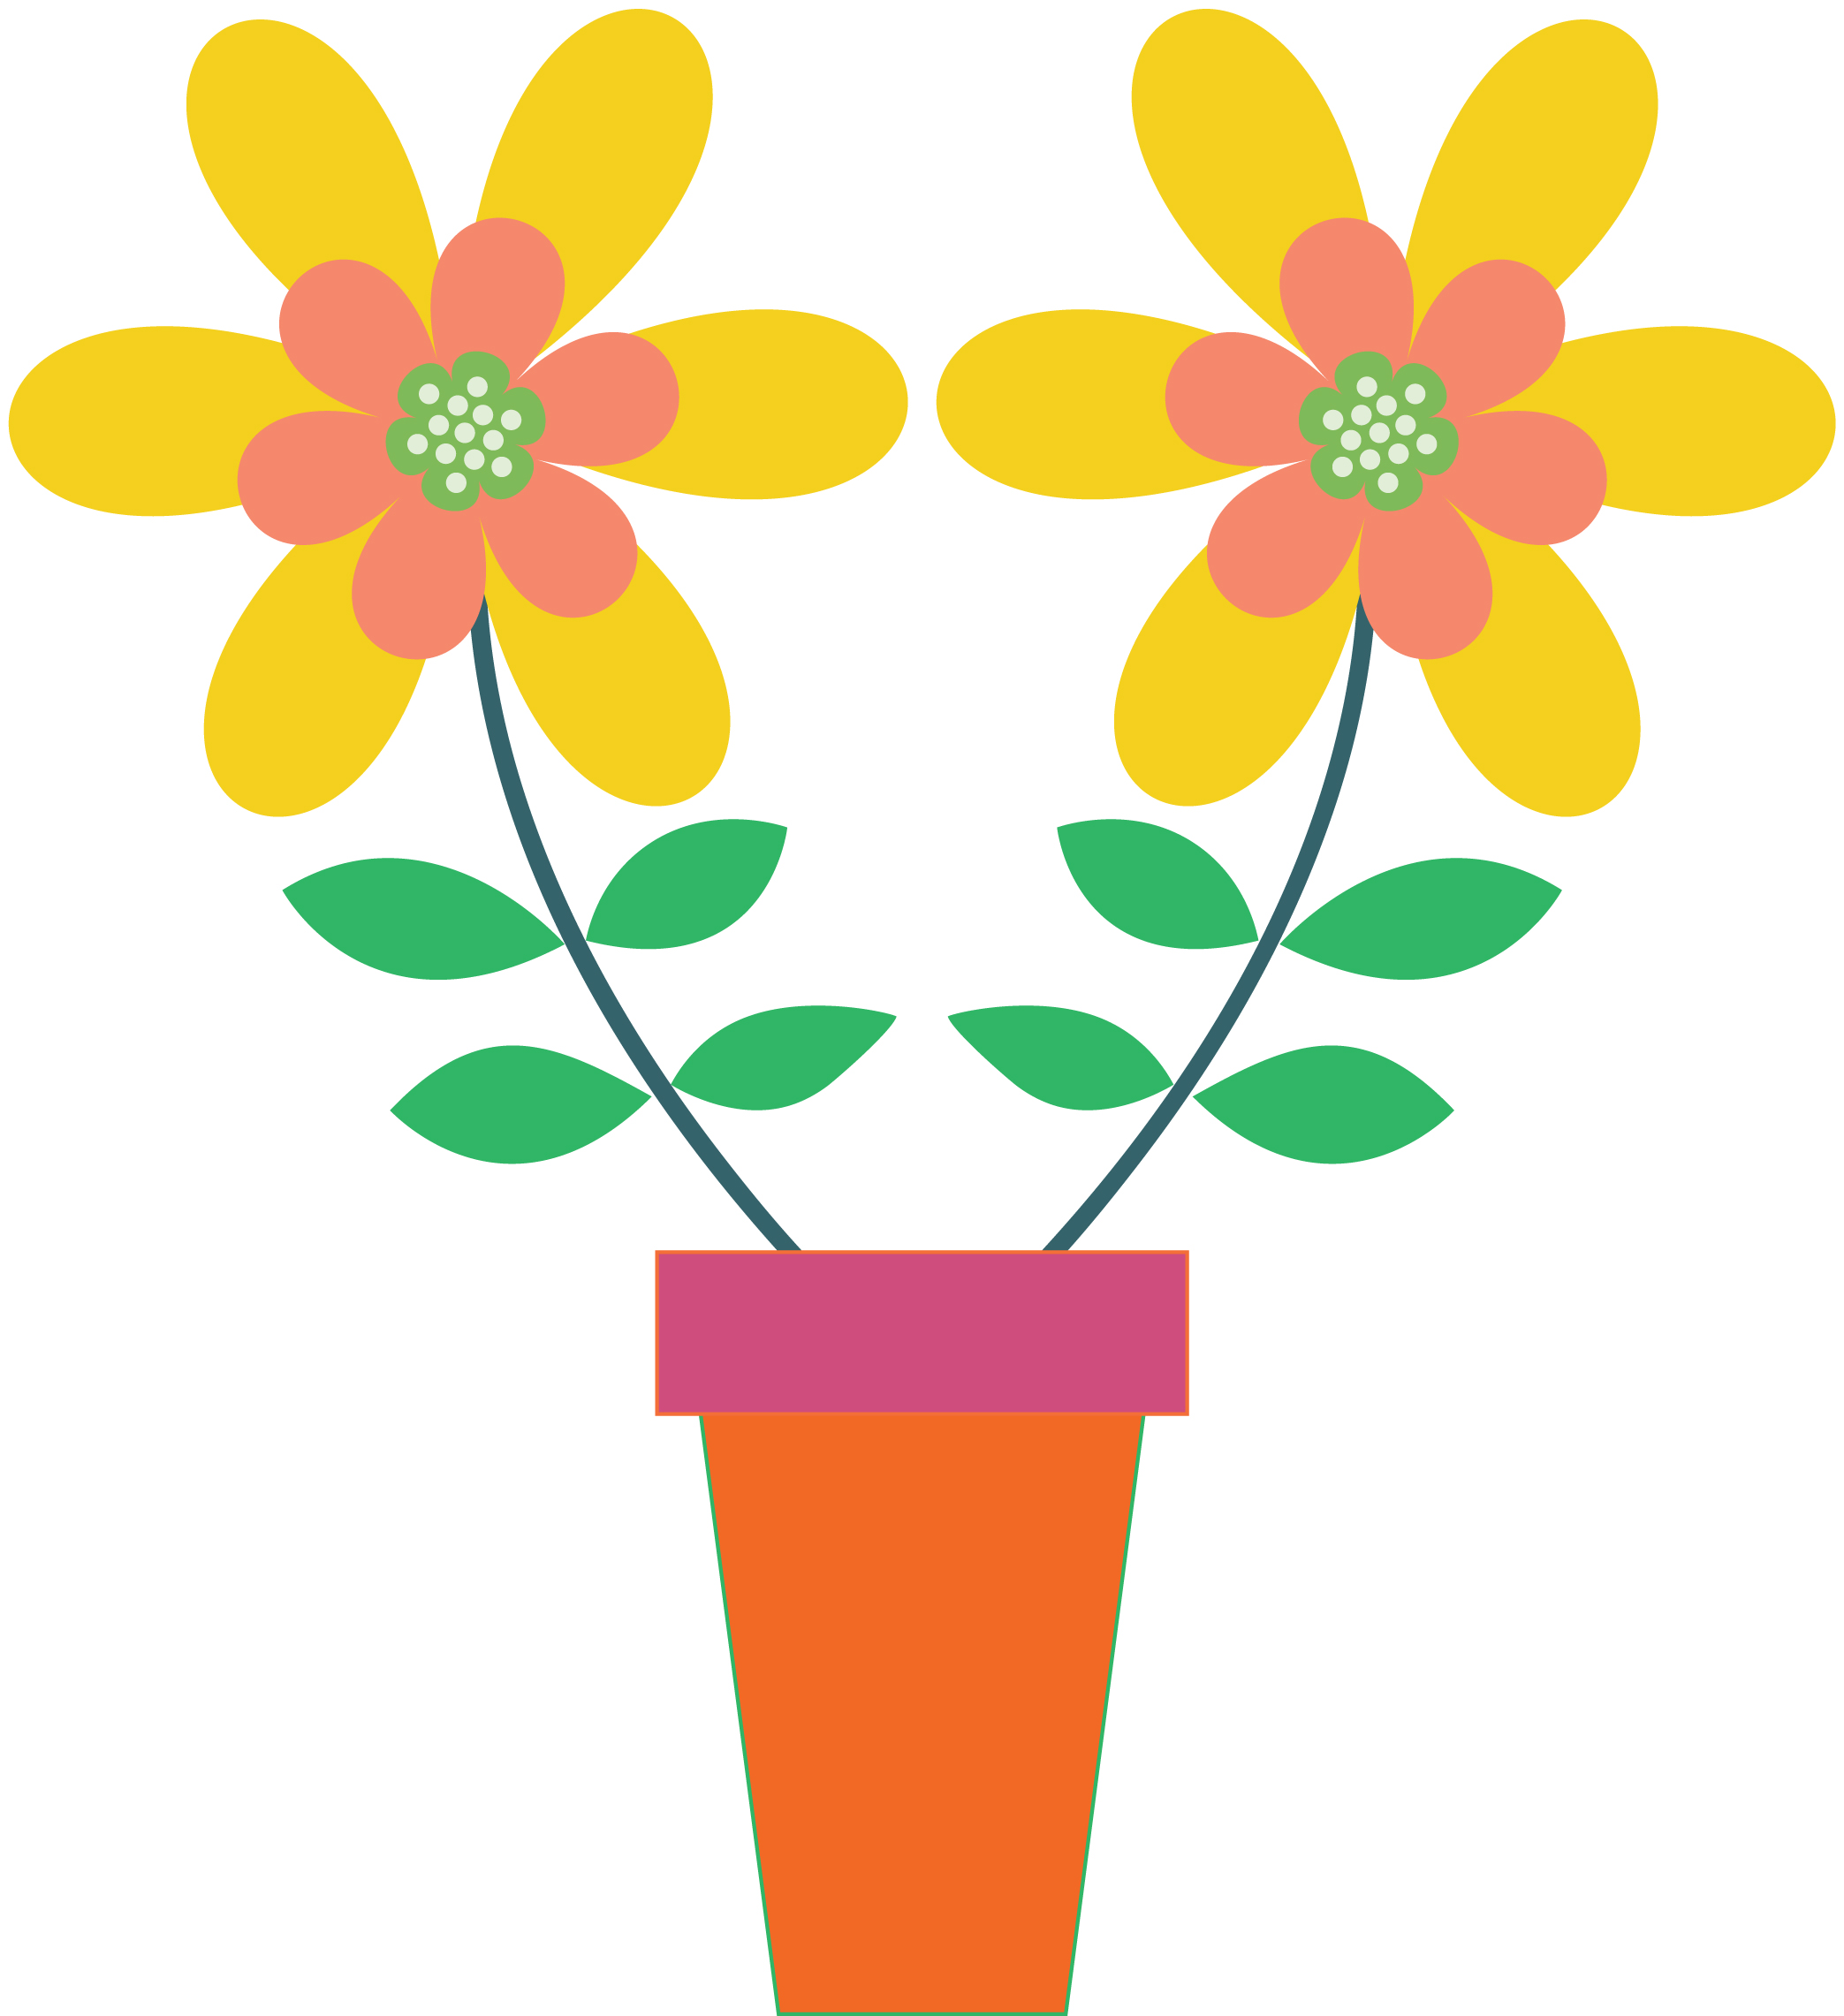 two-yellow-spring-flowers-clipart-016.jpg